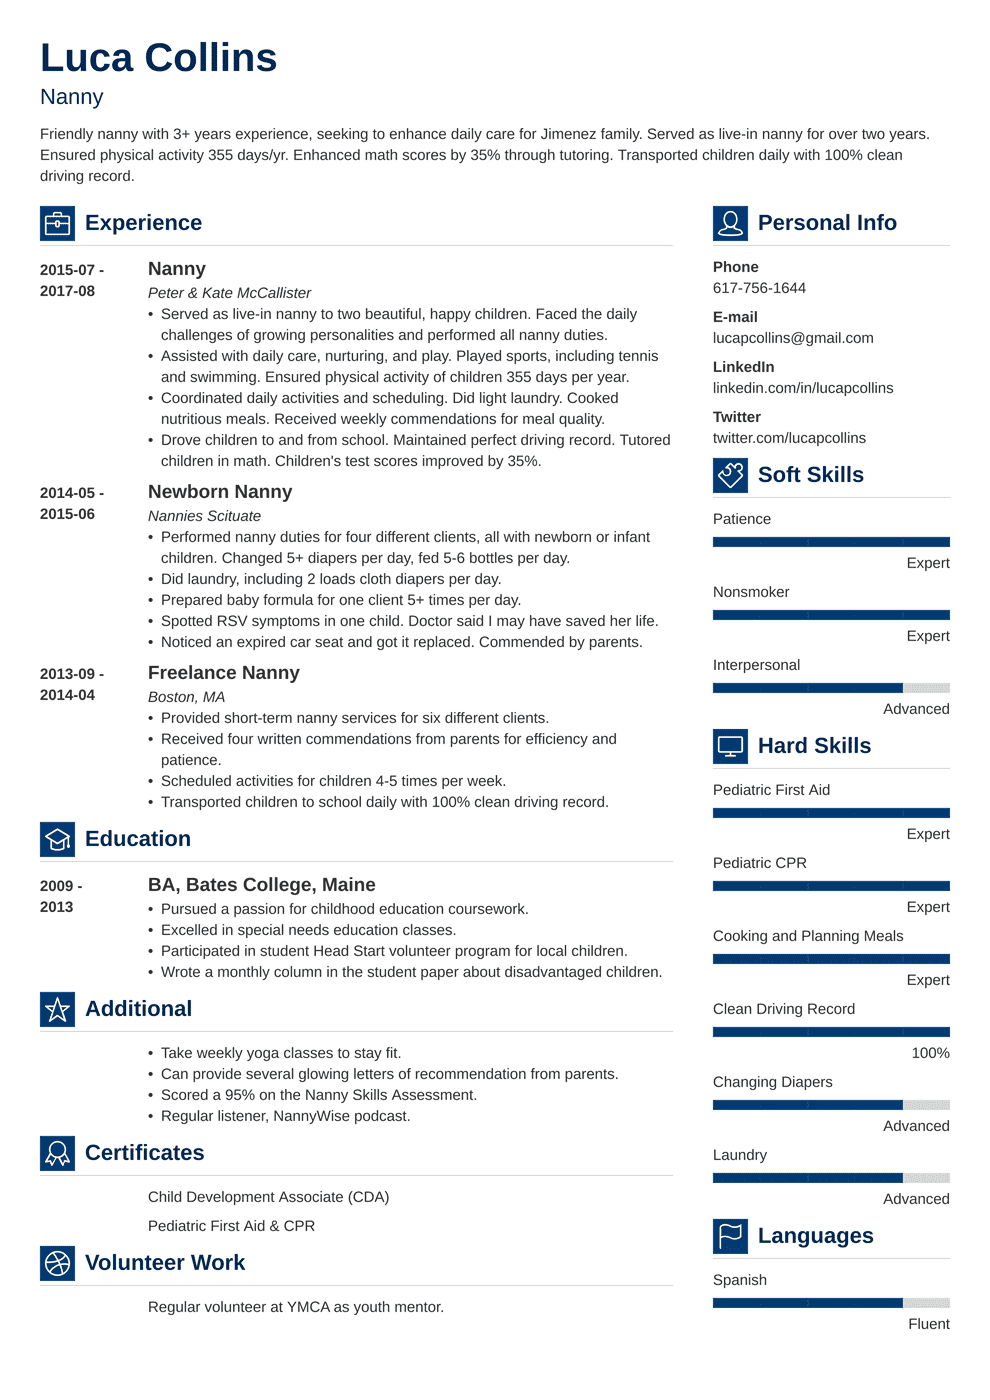 nanny resume template vibes in 2020 Resume examples